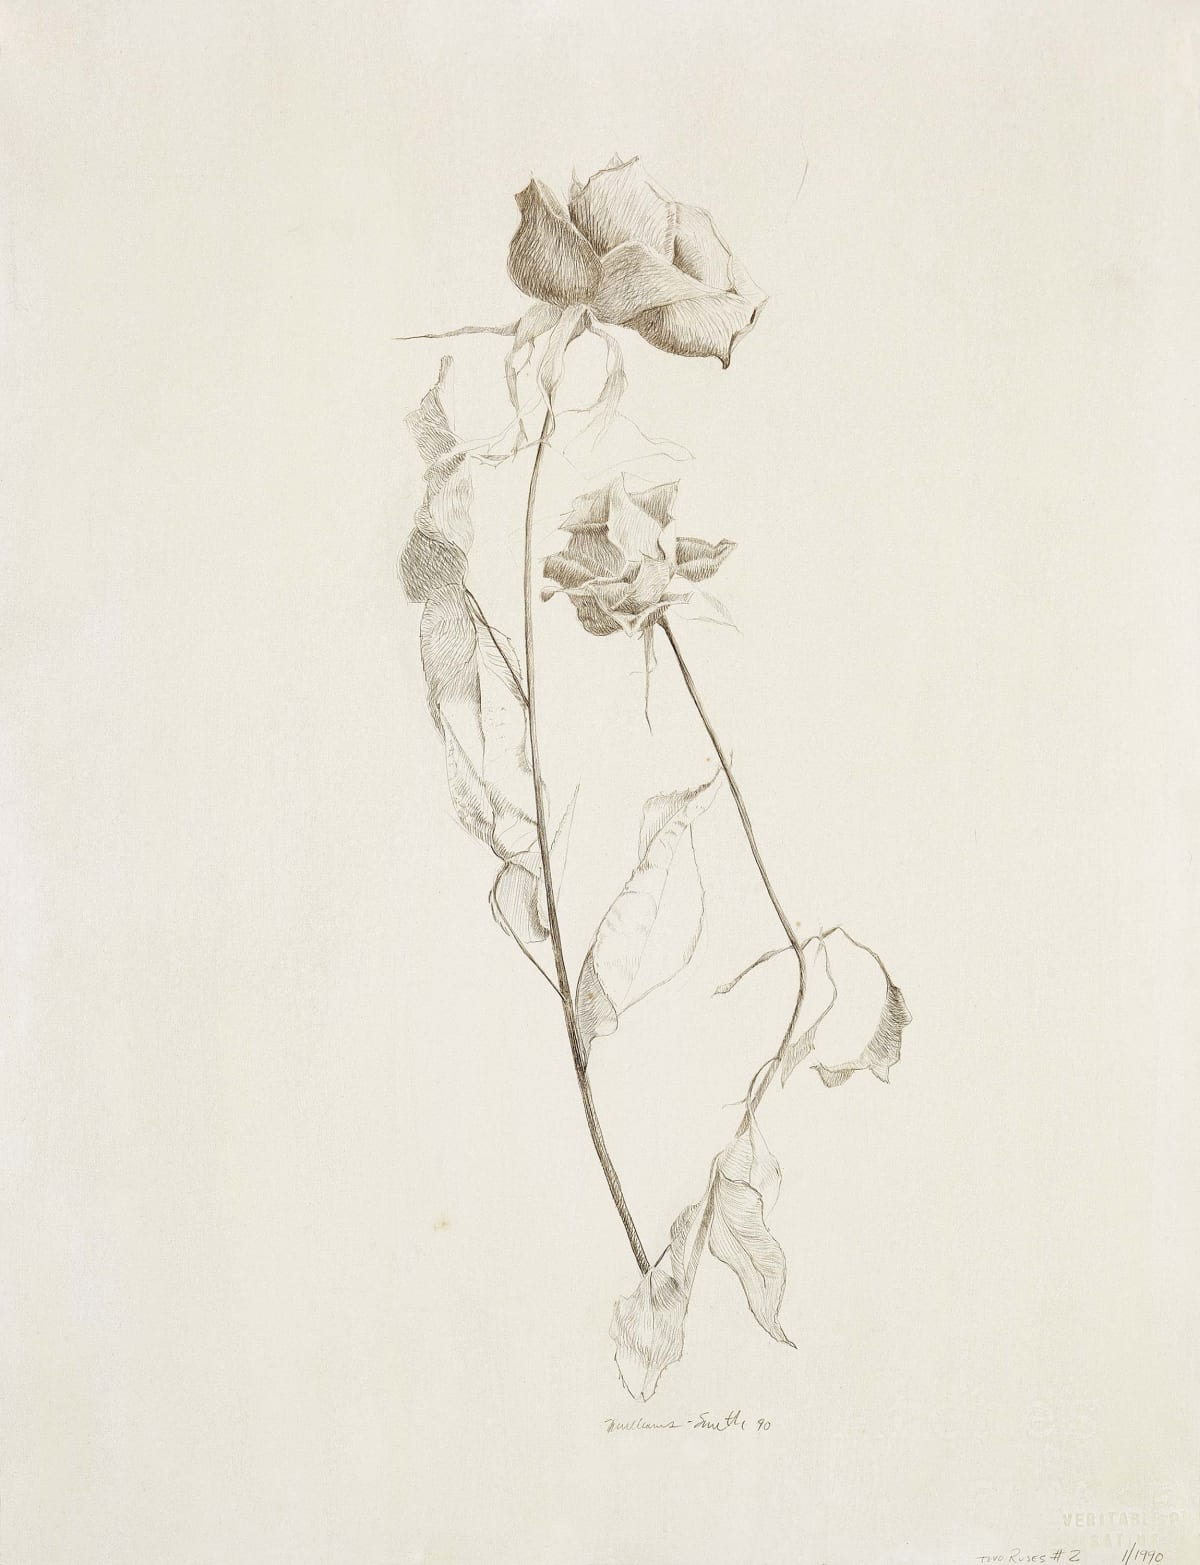 Marjorie Williams-Smith Two Roses #2, 1990 Silverpoint 12 x 9